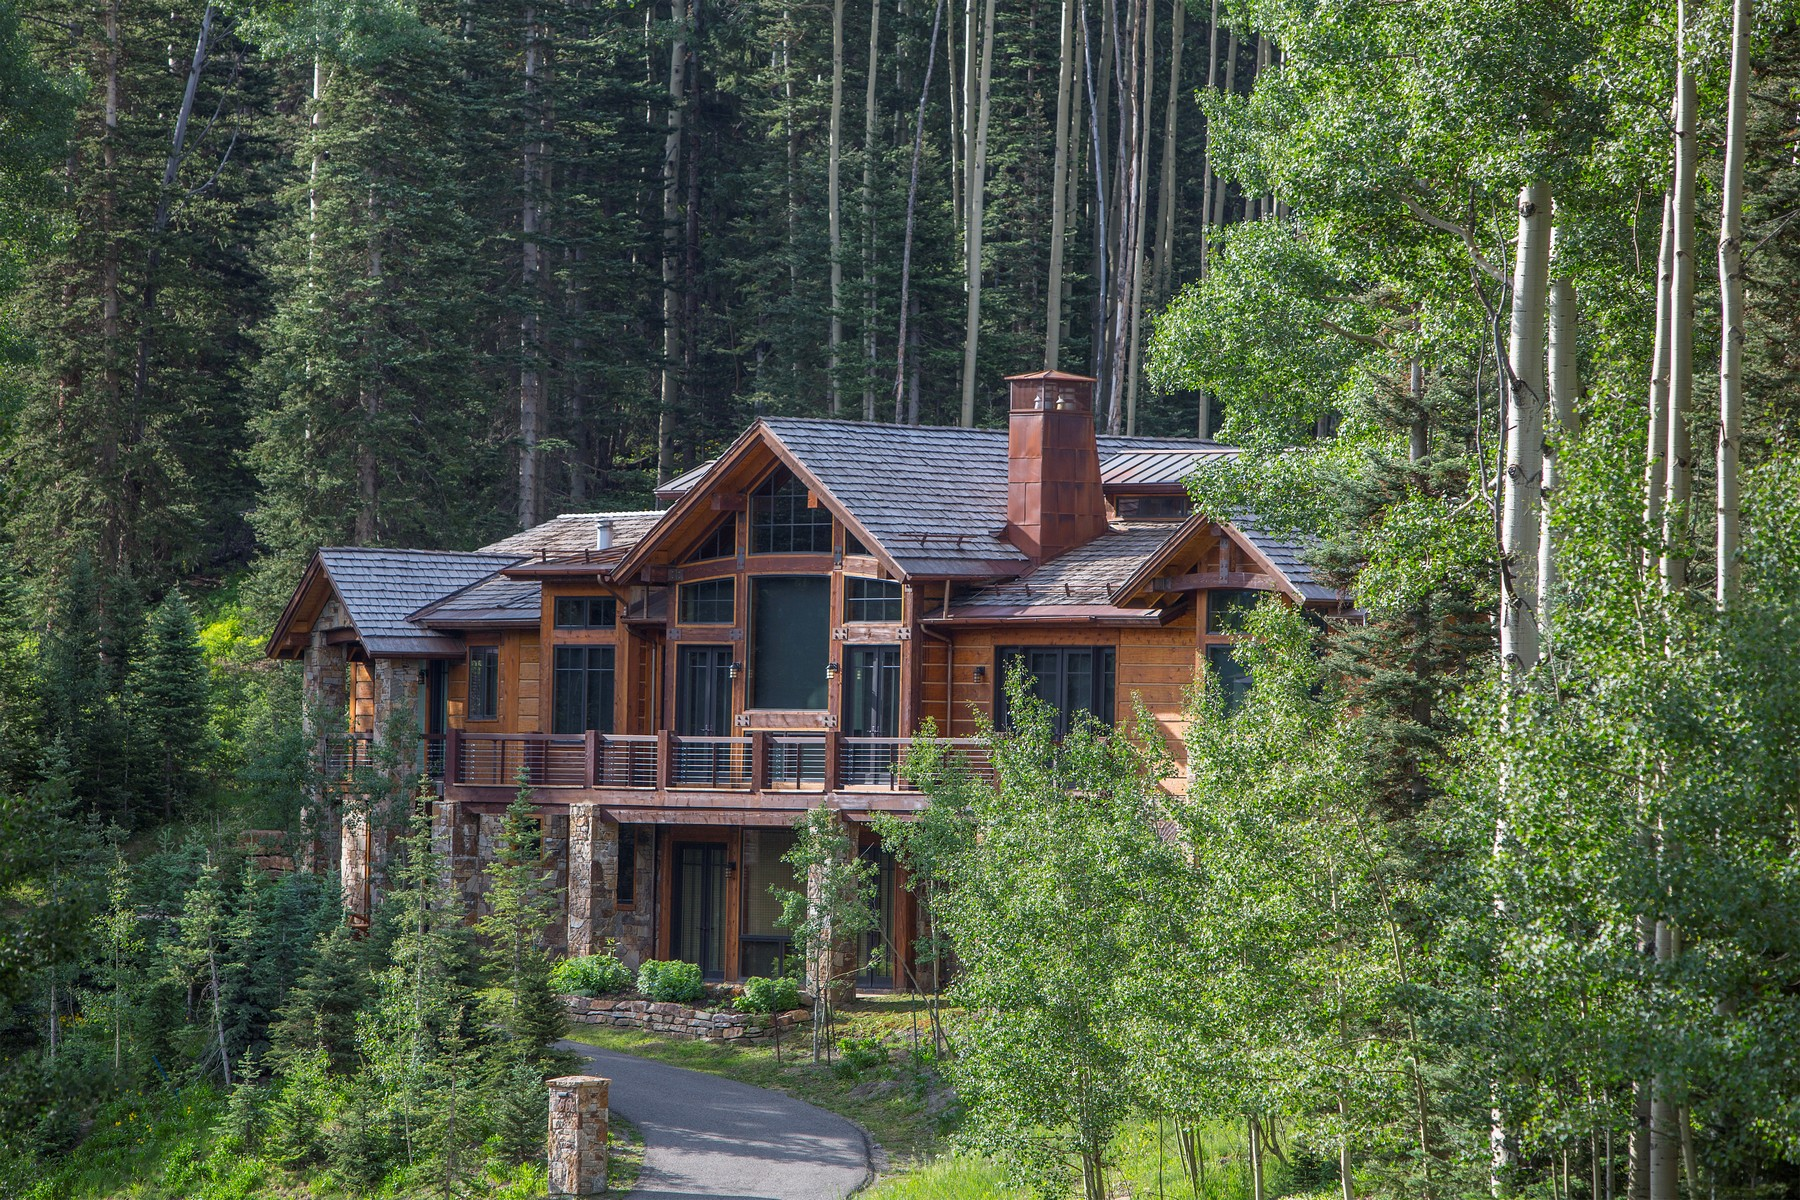 Single Family Home for Active at 159 Benchmark 159 Benchmark Telluride, Colorado 81435 United States